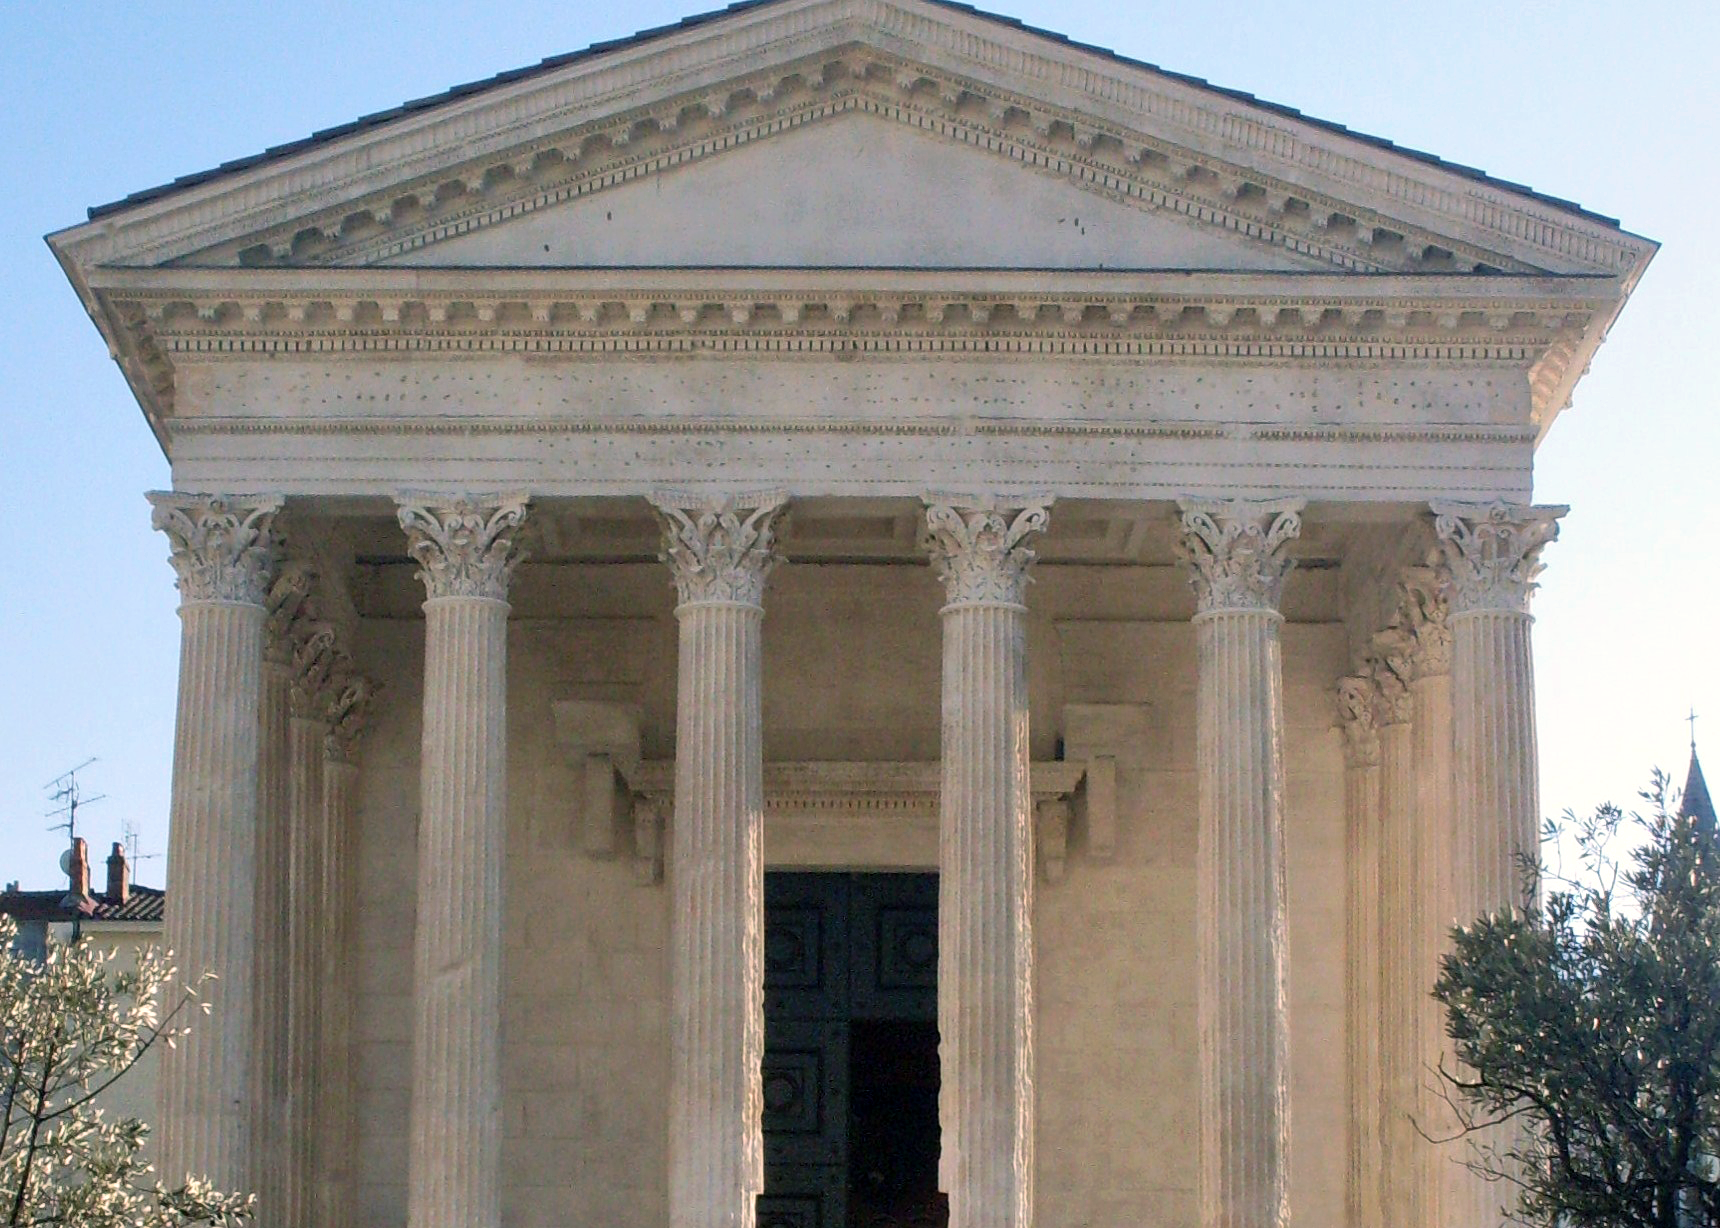 The  Maison Carrée . Photo by Danichou, public domain via  Wikimedia .